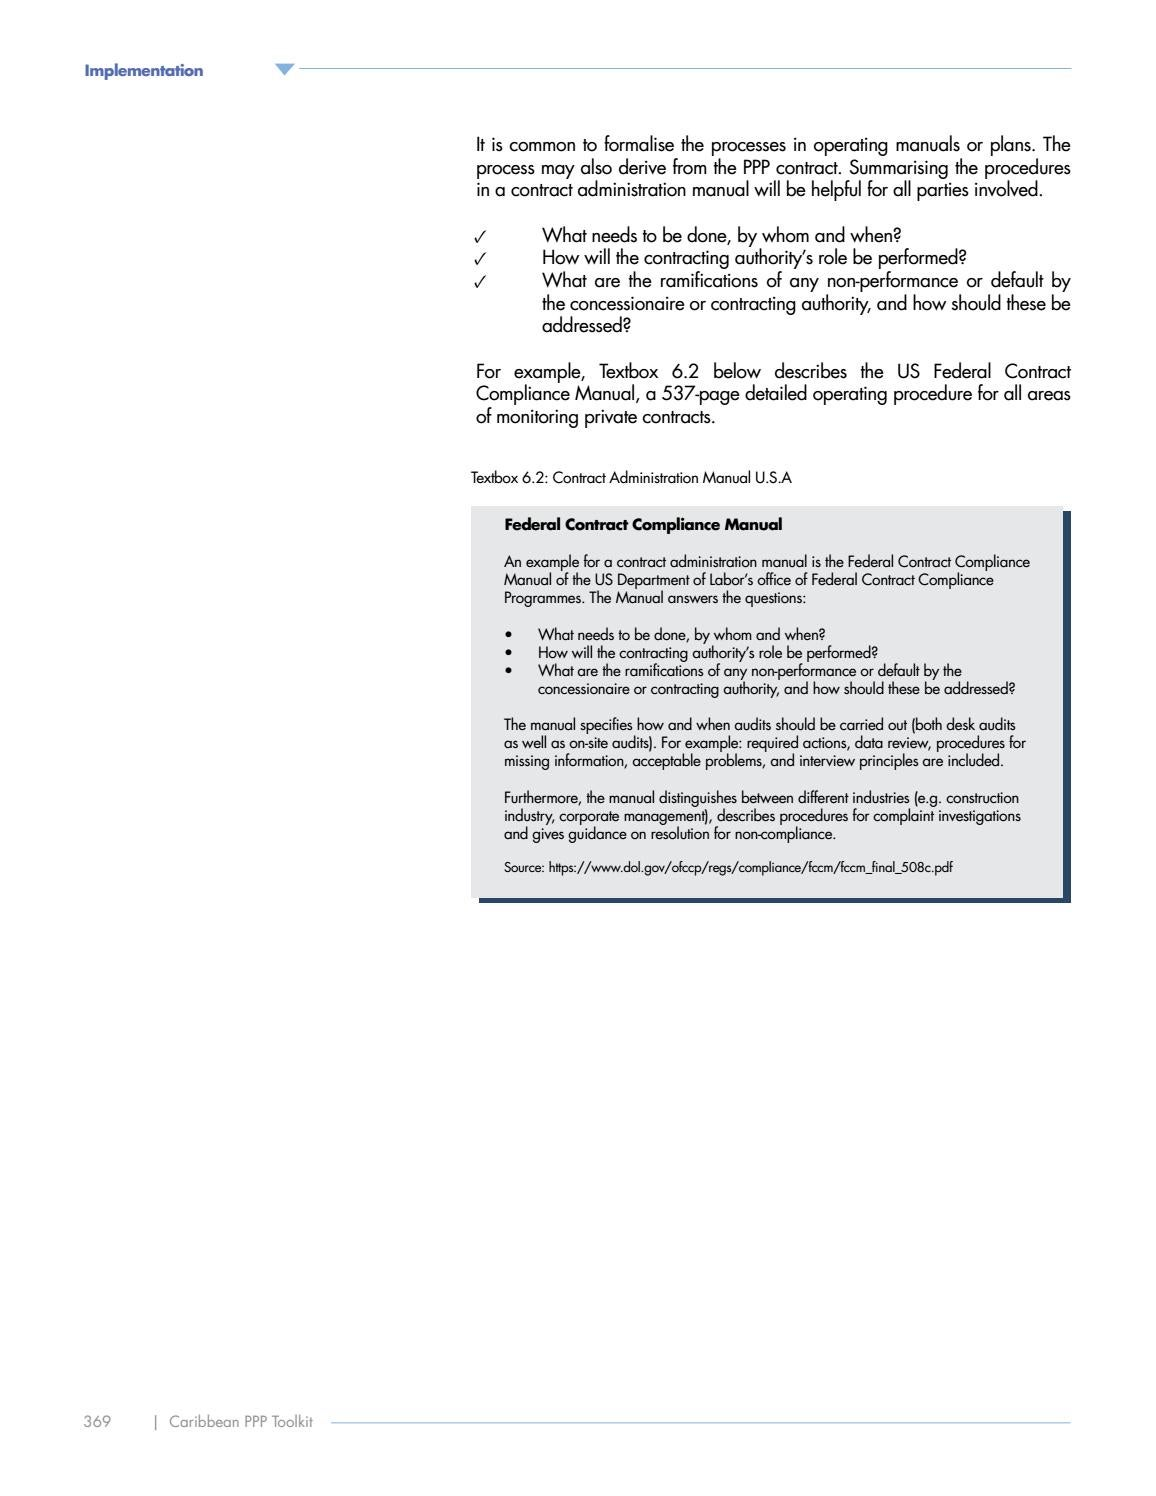 public private partnerships ppp toolkit by caribbean development rh issuu com nra construction contract administration manual construction contract administration manual pdf